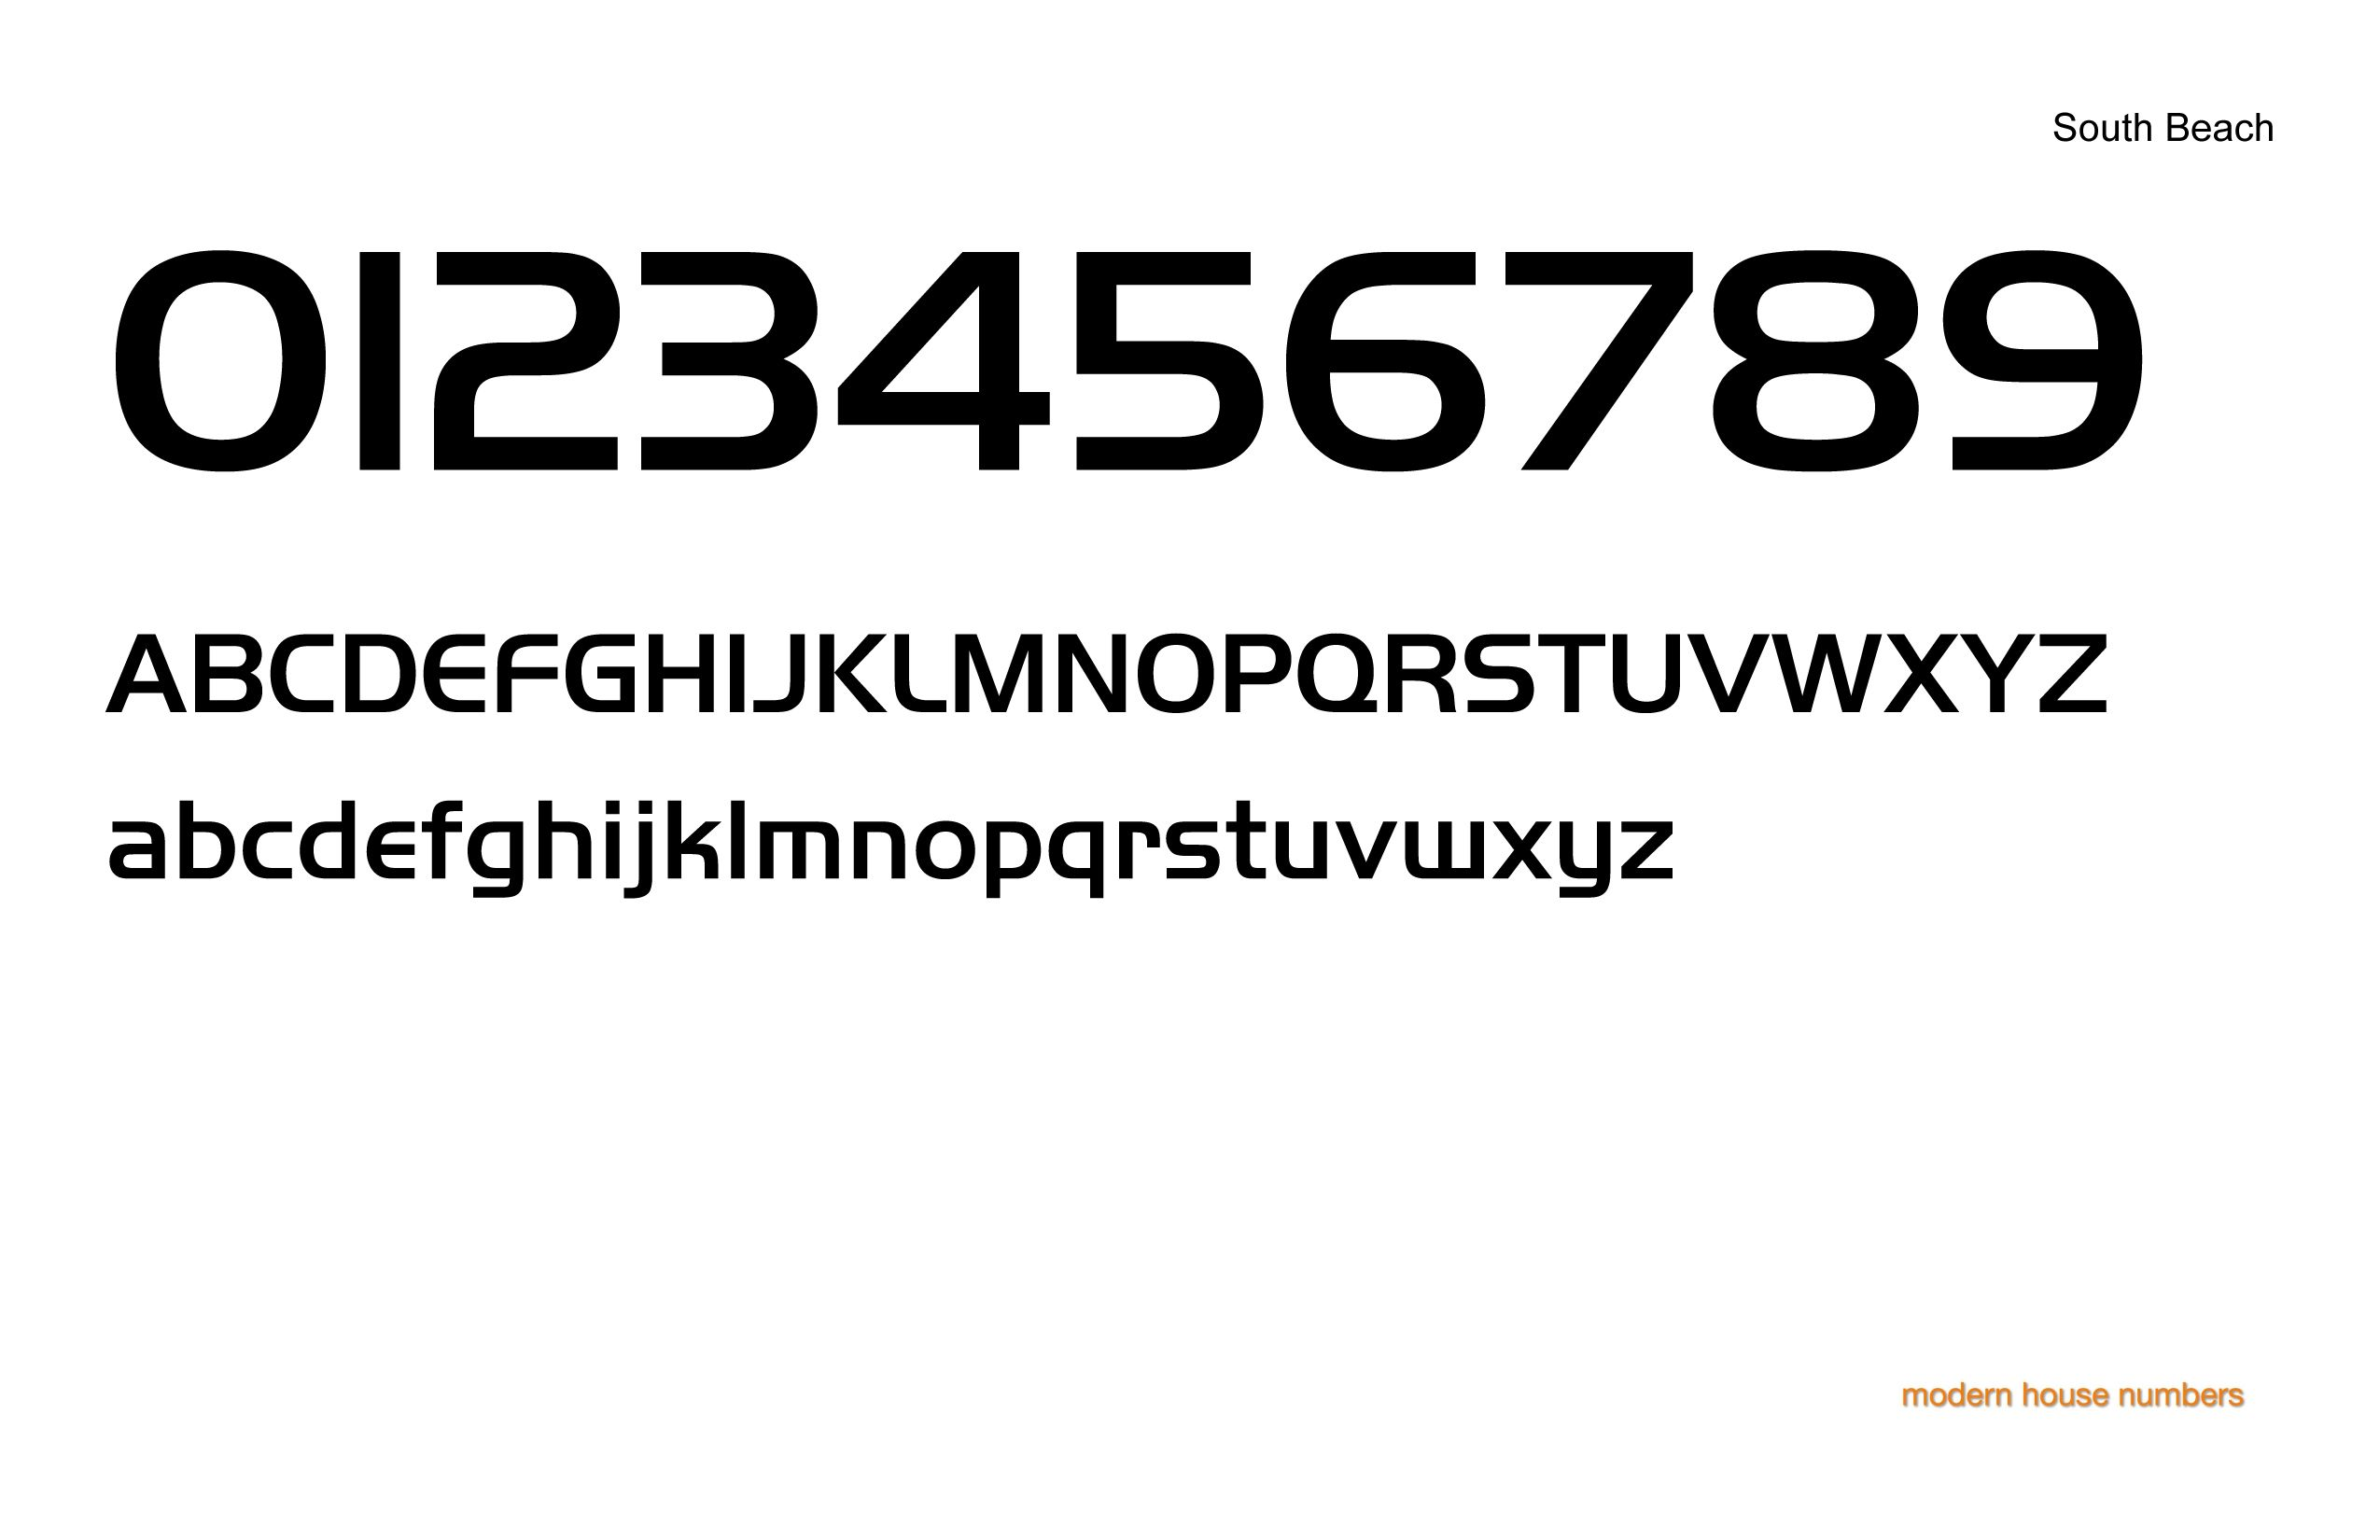 check out our Modern House Numbers South Beach font www